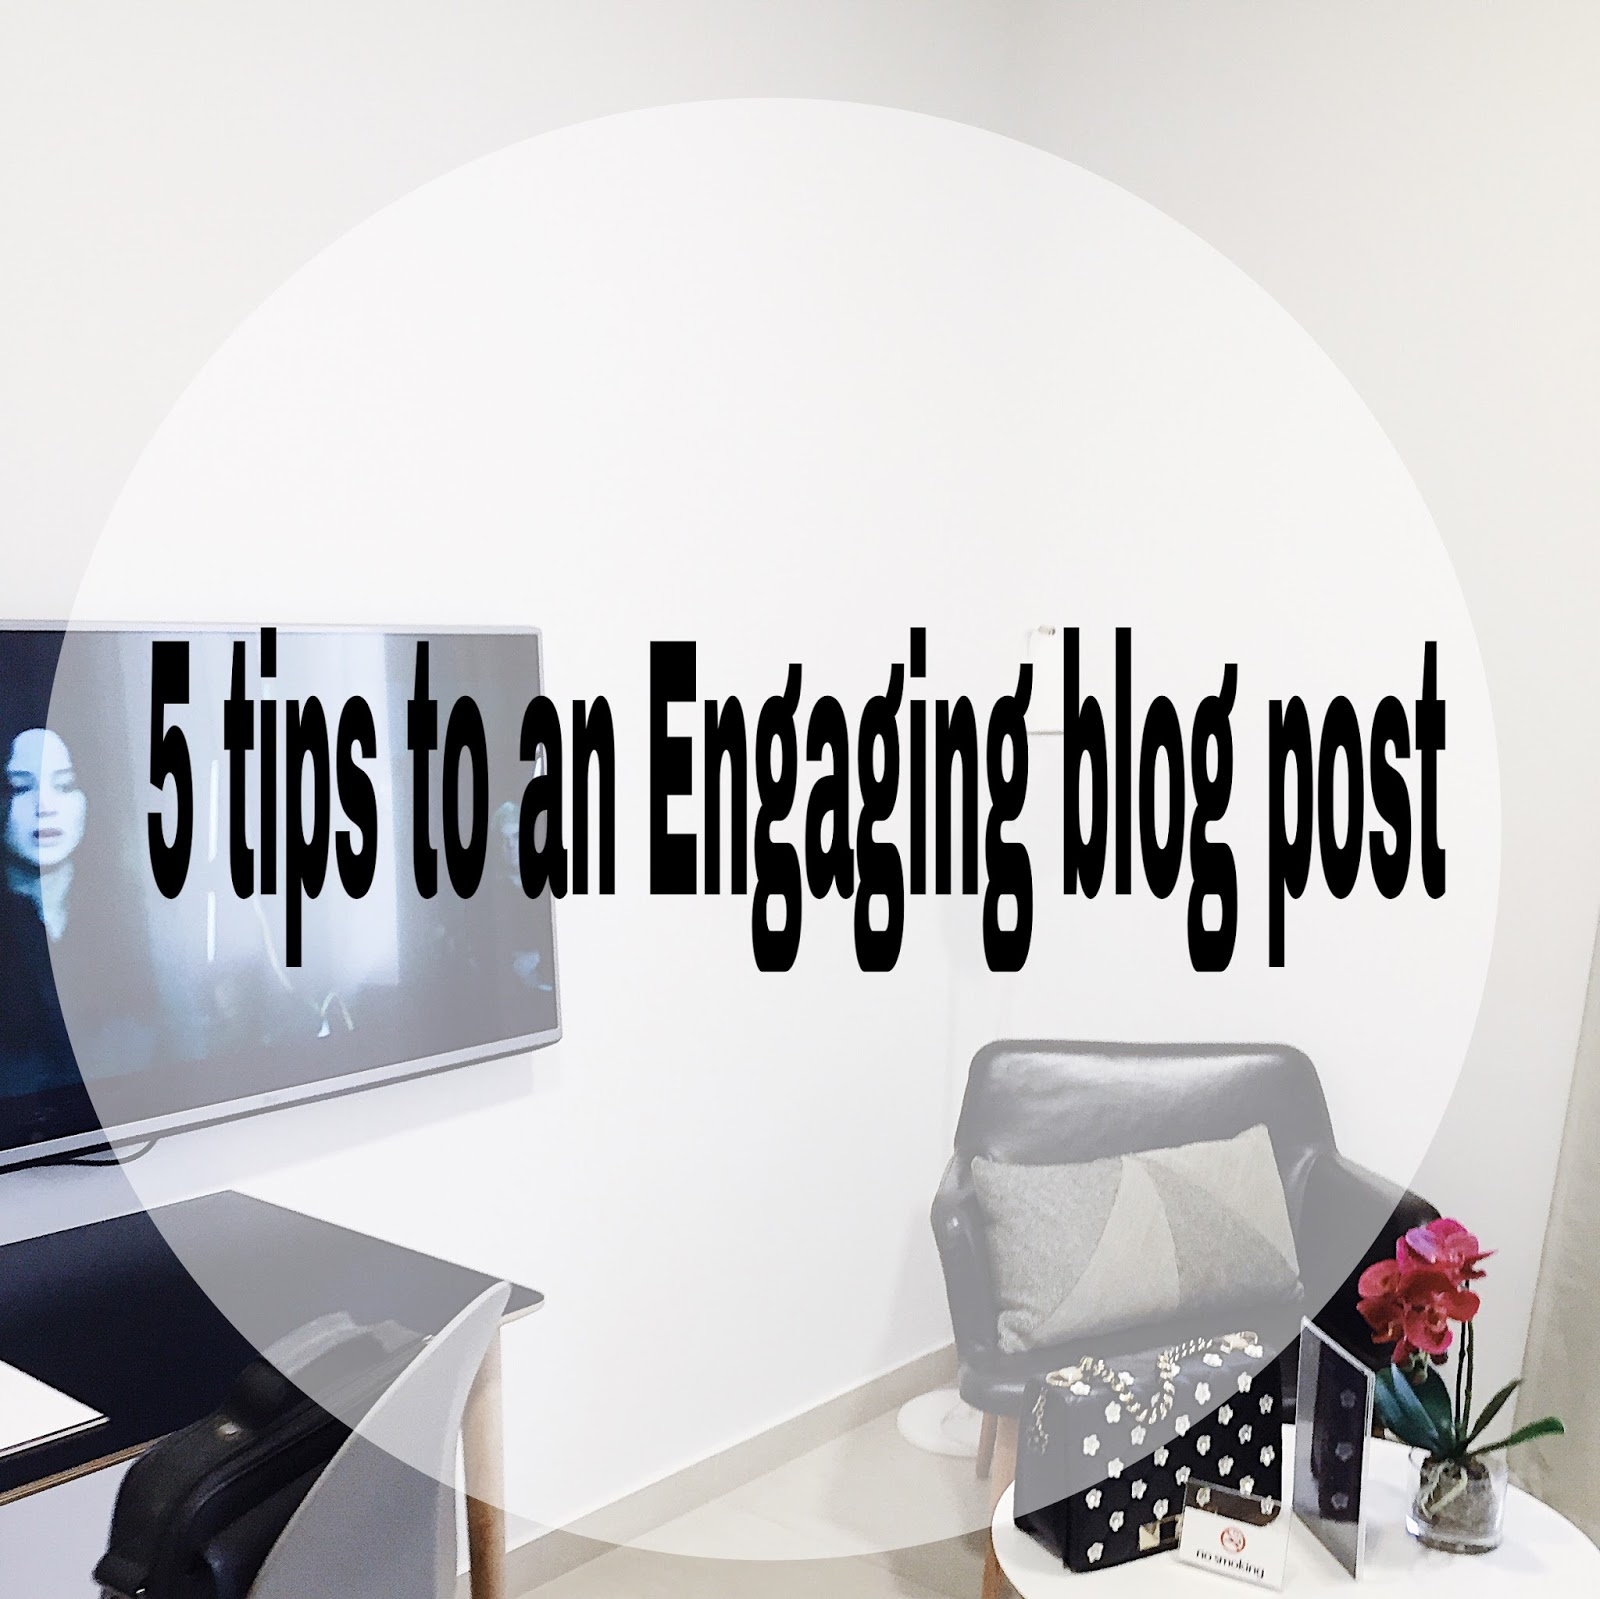 5 TIPS TO AN ENGAGING BLOG POST